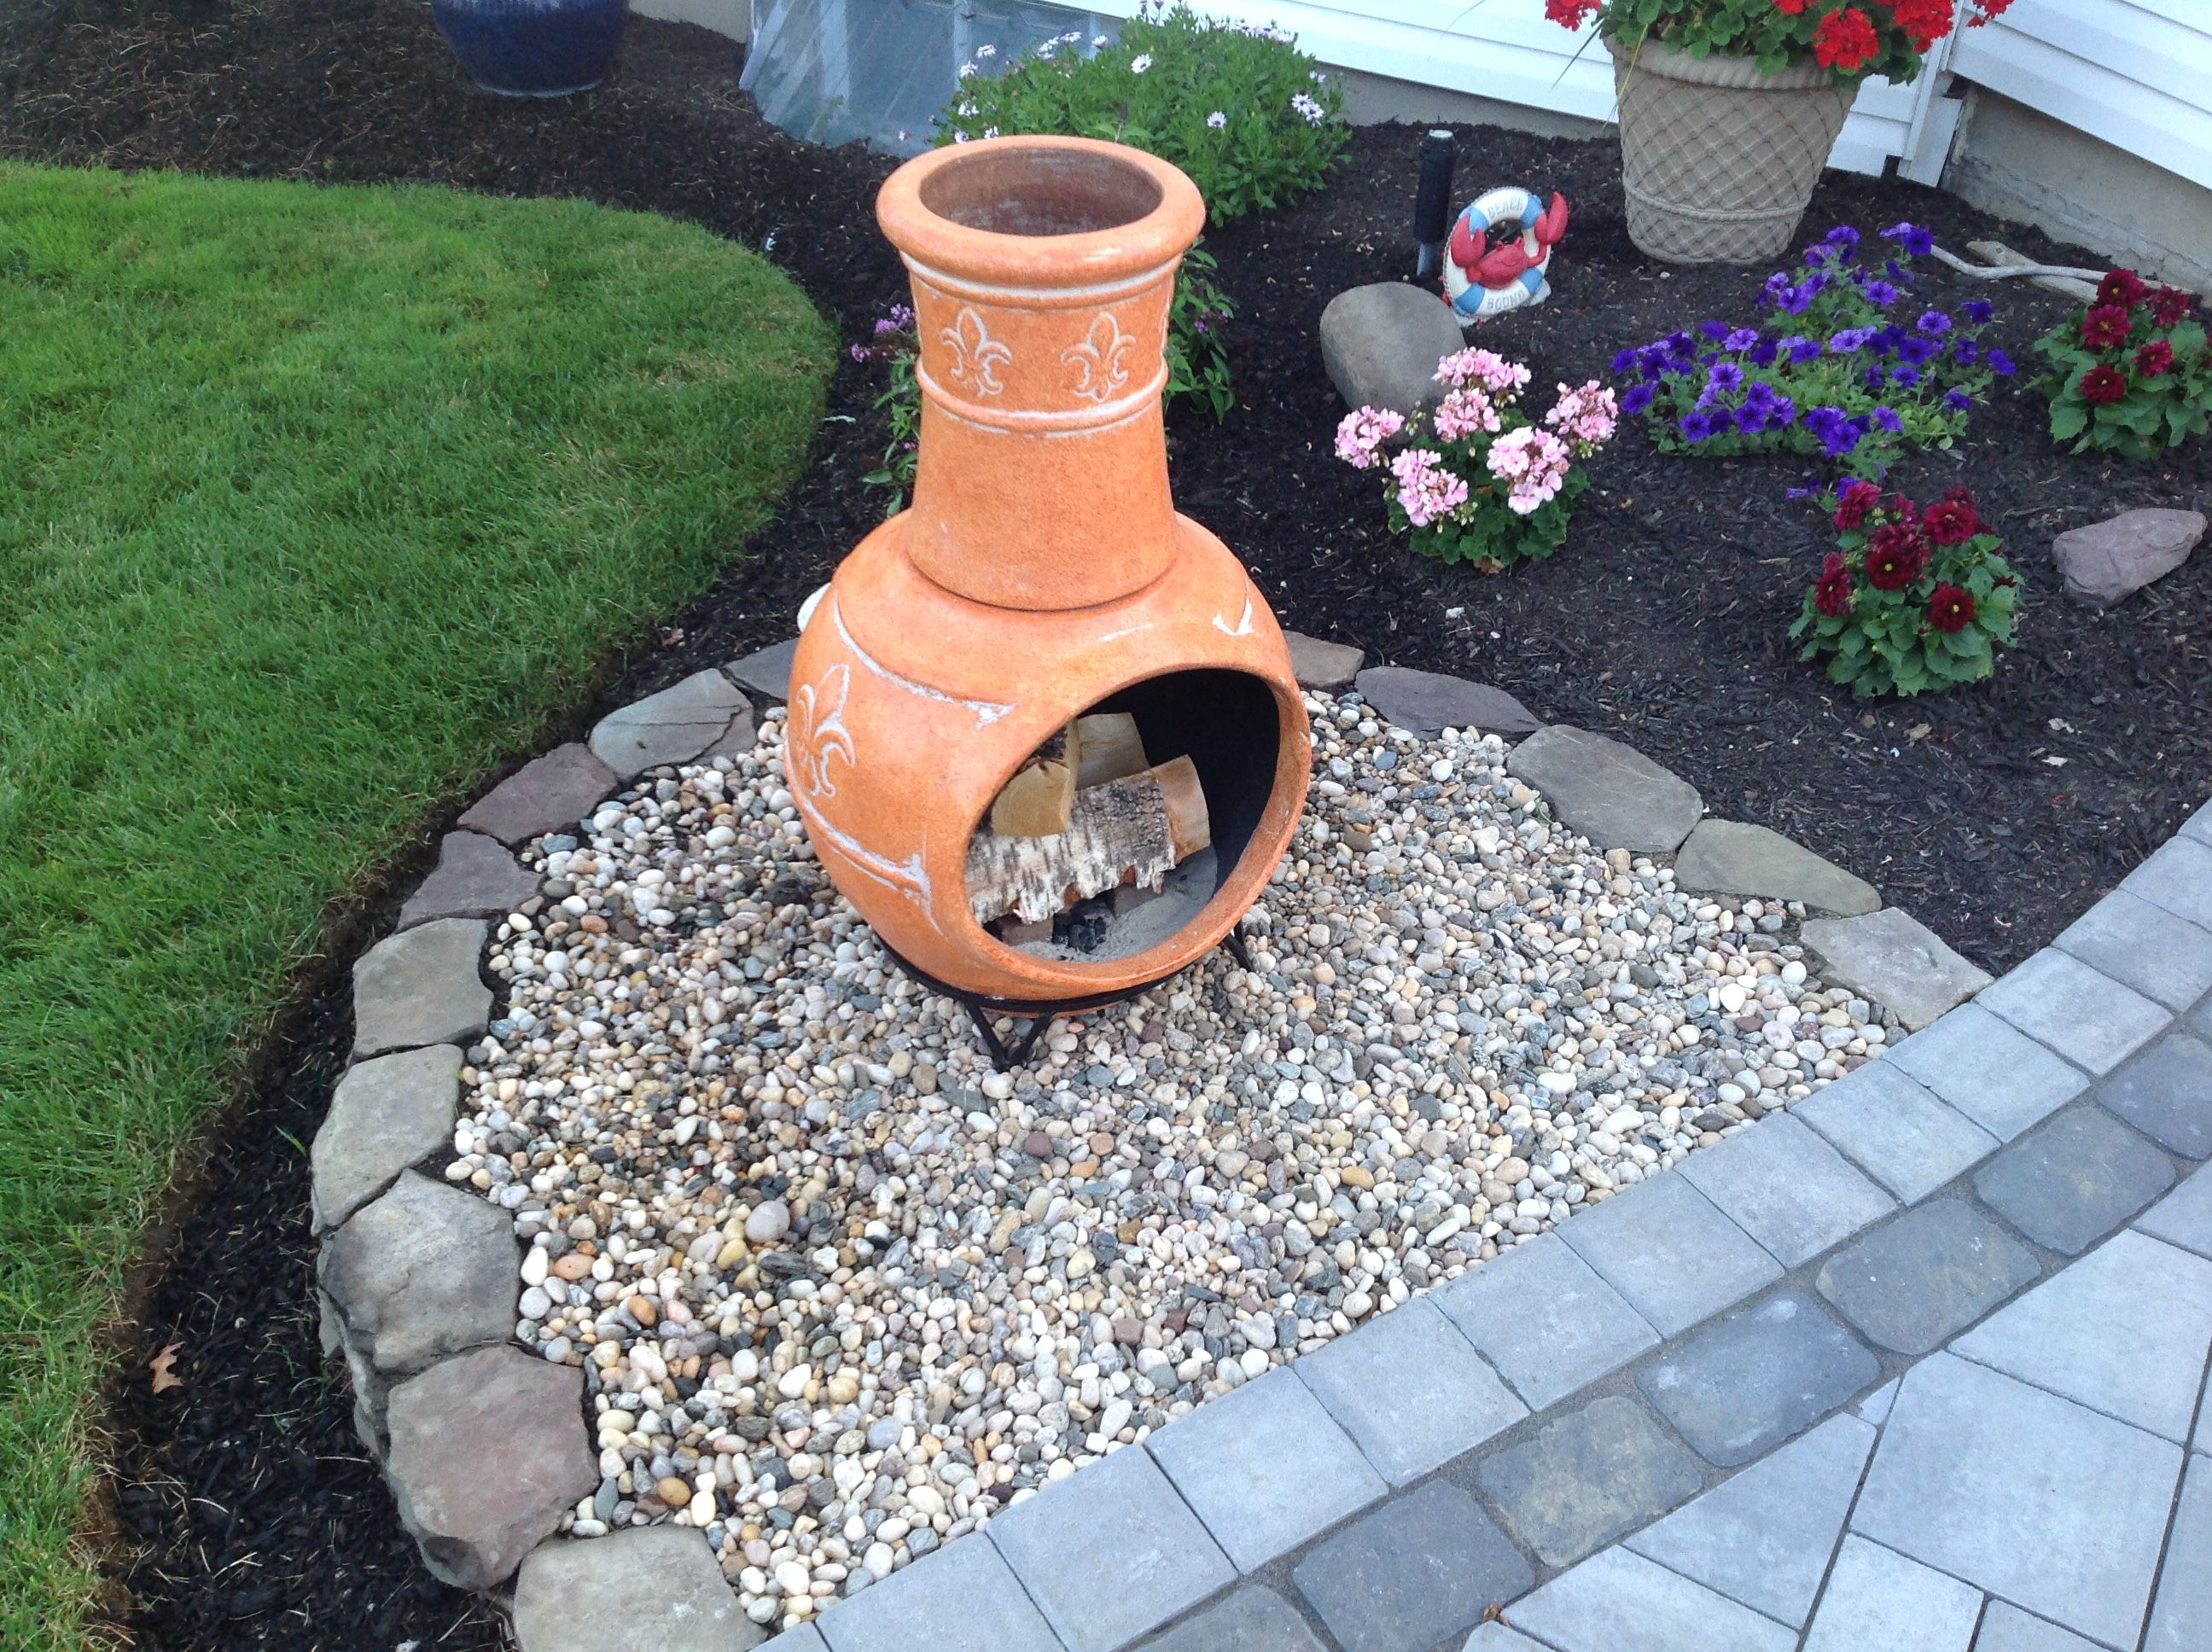 Inspiring  Best Ideas About Chiminea Fire Pit On Pinterest  Steel Fire  With Engaging Diy  Chiminea Fire Pit With Attractive Small Garden Cabins Also Garden Cour In Addition Claremont Garden And Garden Fairies For Sale As Well As Sun Yat Sen Garden Vancouver Additionally Harold Hillier Gardens From Ukpinterestcom With   Attractive  Best Ideas About Chiminea Fire Pit On Pinterest  Steel Fire  With Inspiring Garden Fairies For Sale As Well As Sun Yat Sen Garden Vancouver Additionally Harold Hillier Gardens And Engaging Diy  Chiminea Fire Pit Via Ukpinterestcom